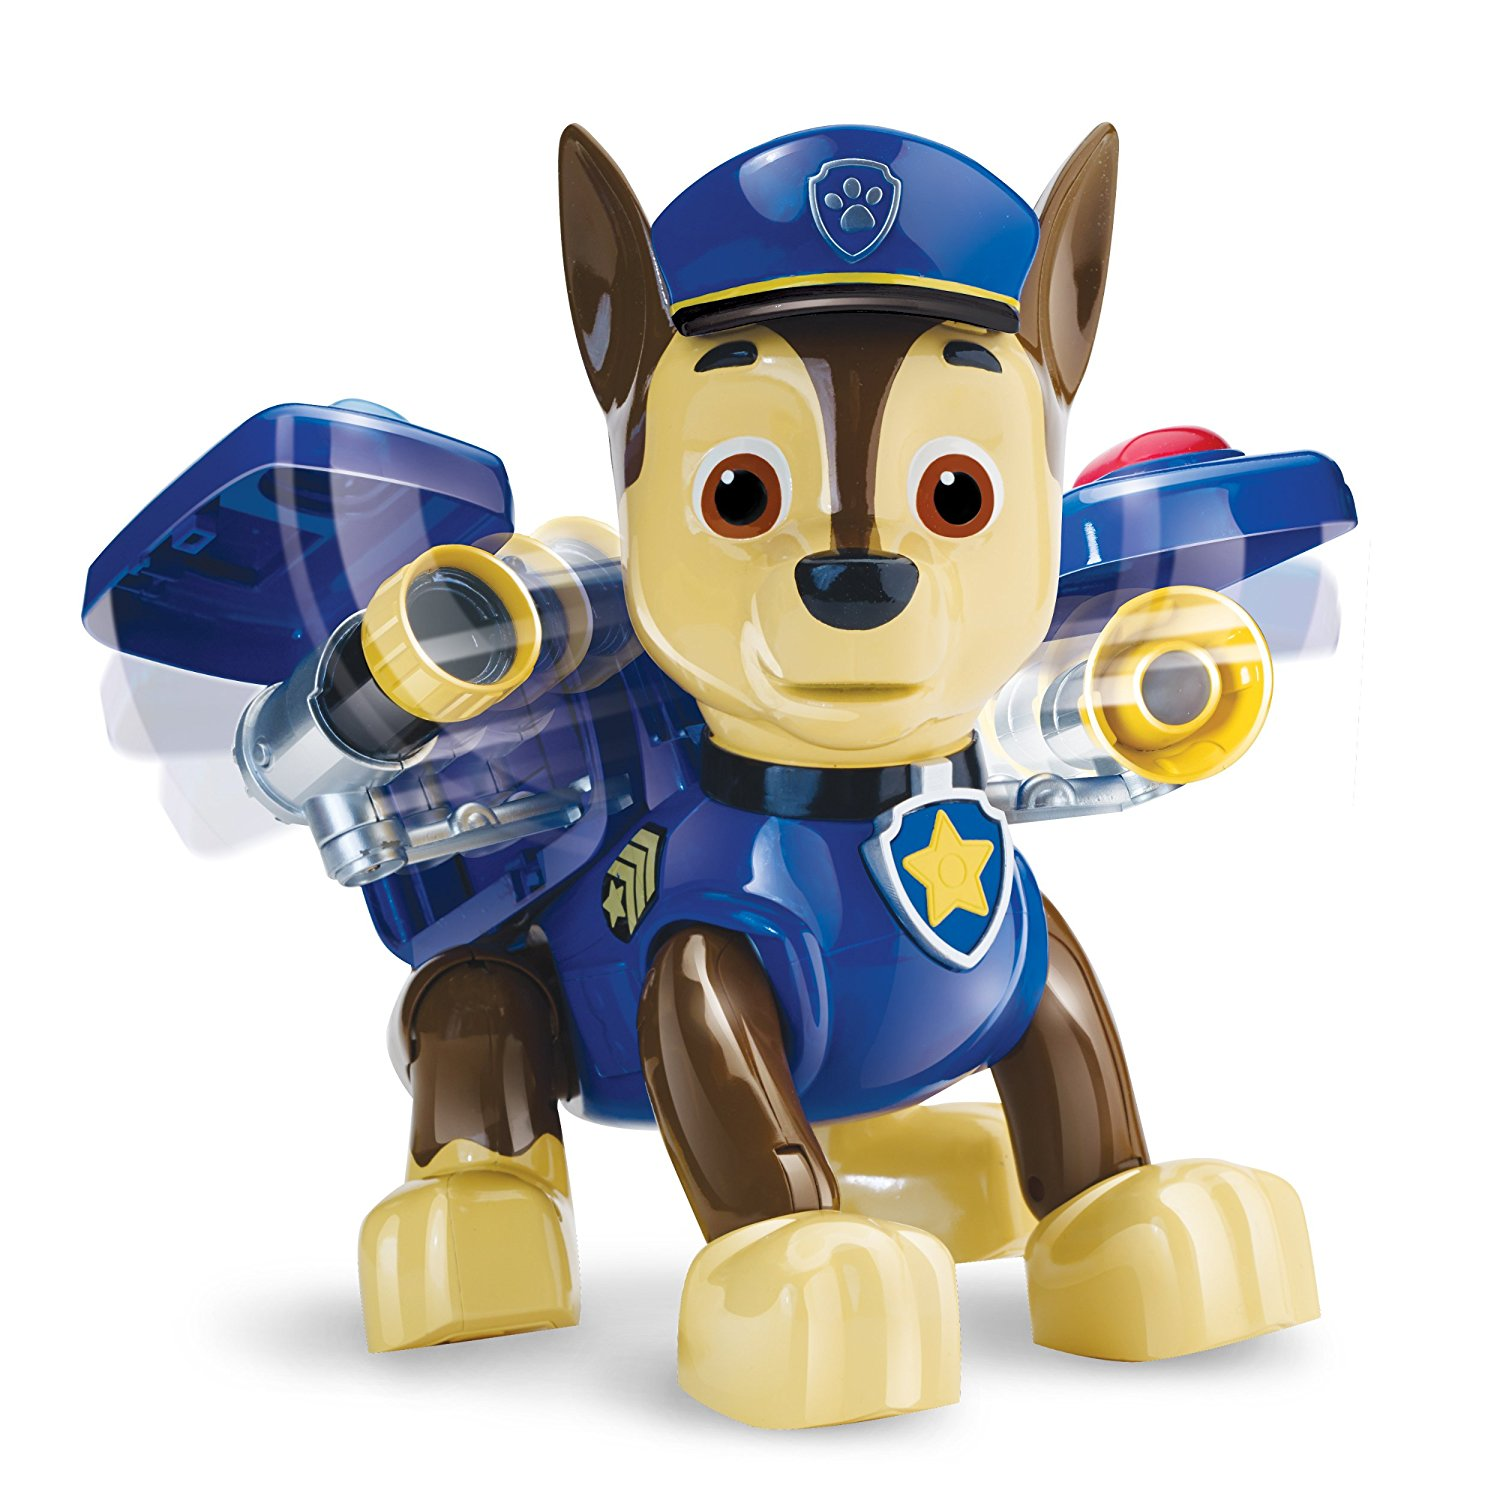 Paw patrol police dog clipart jpg free download Amazon.com: Paw Patrol - Mission Chase: Toys & Games jpg free download